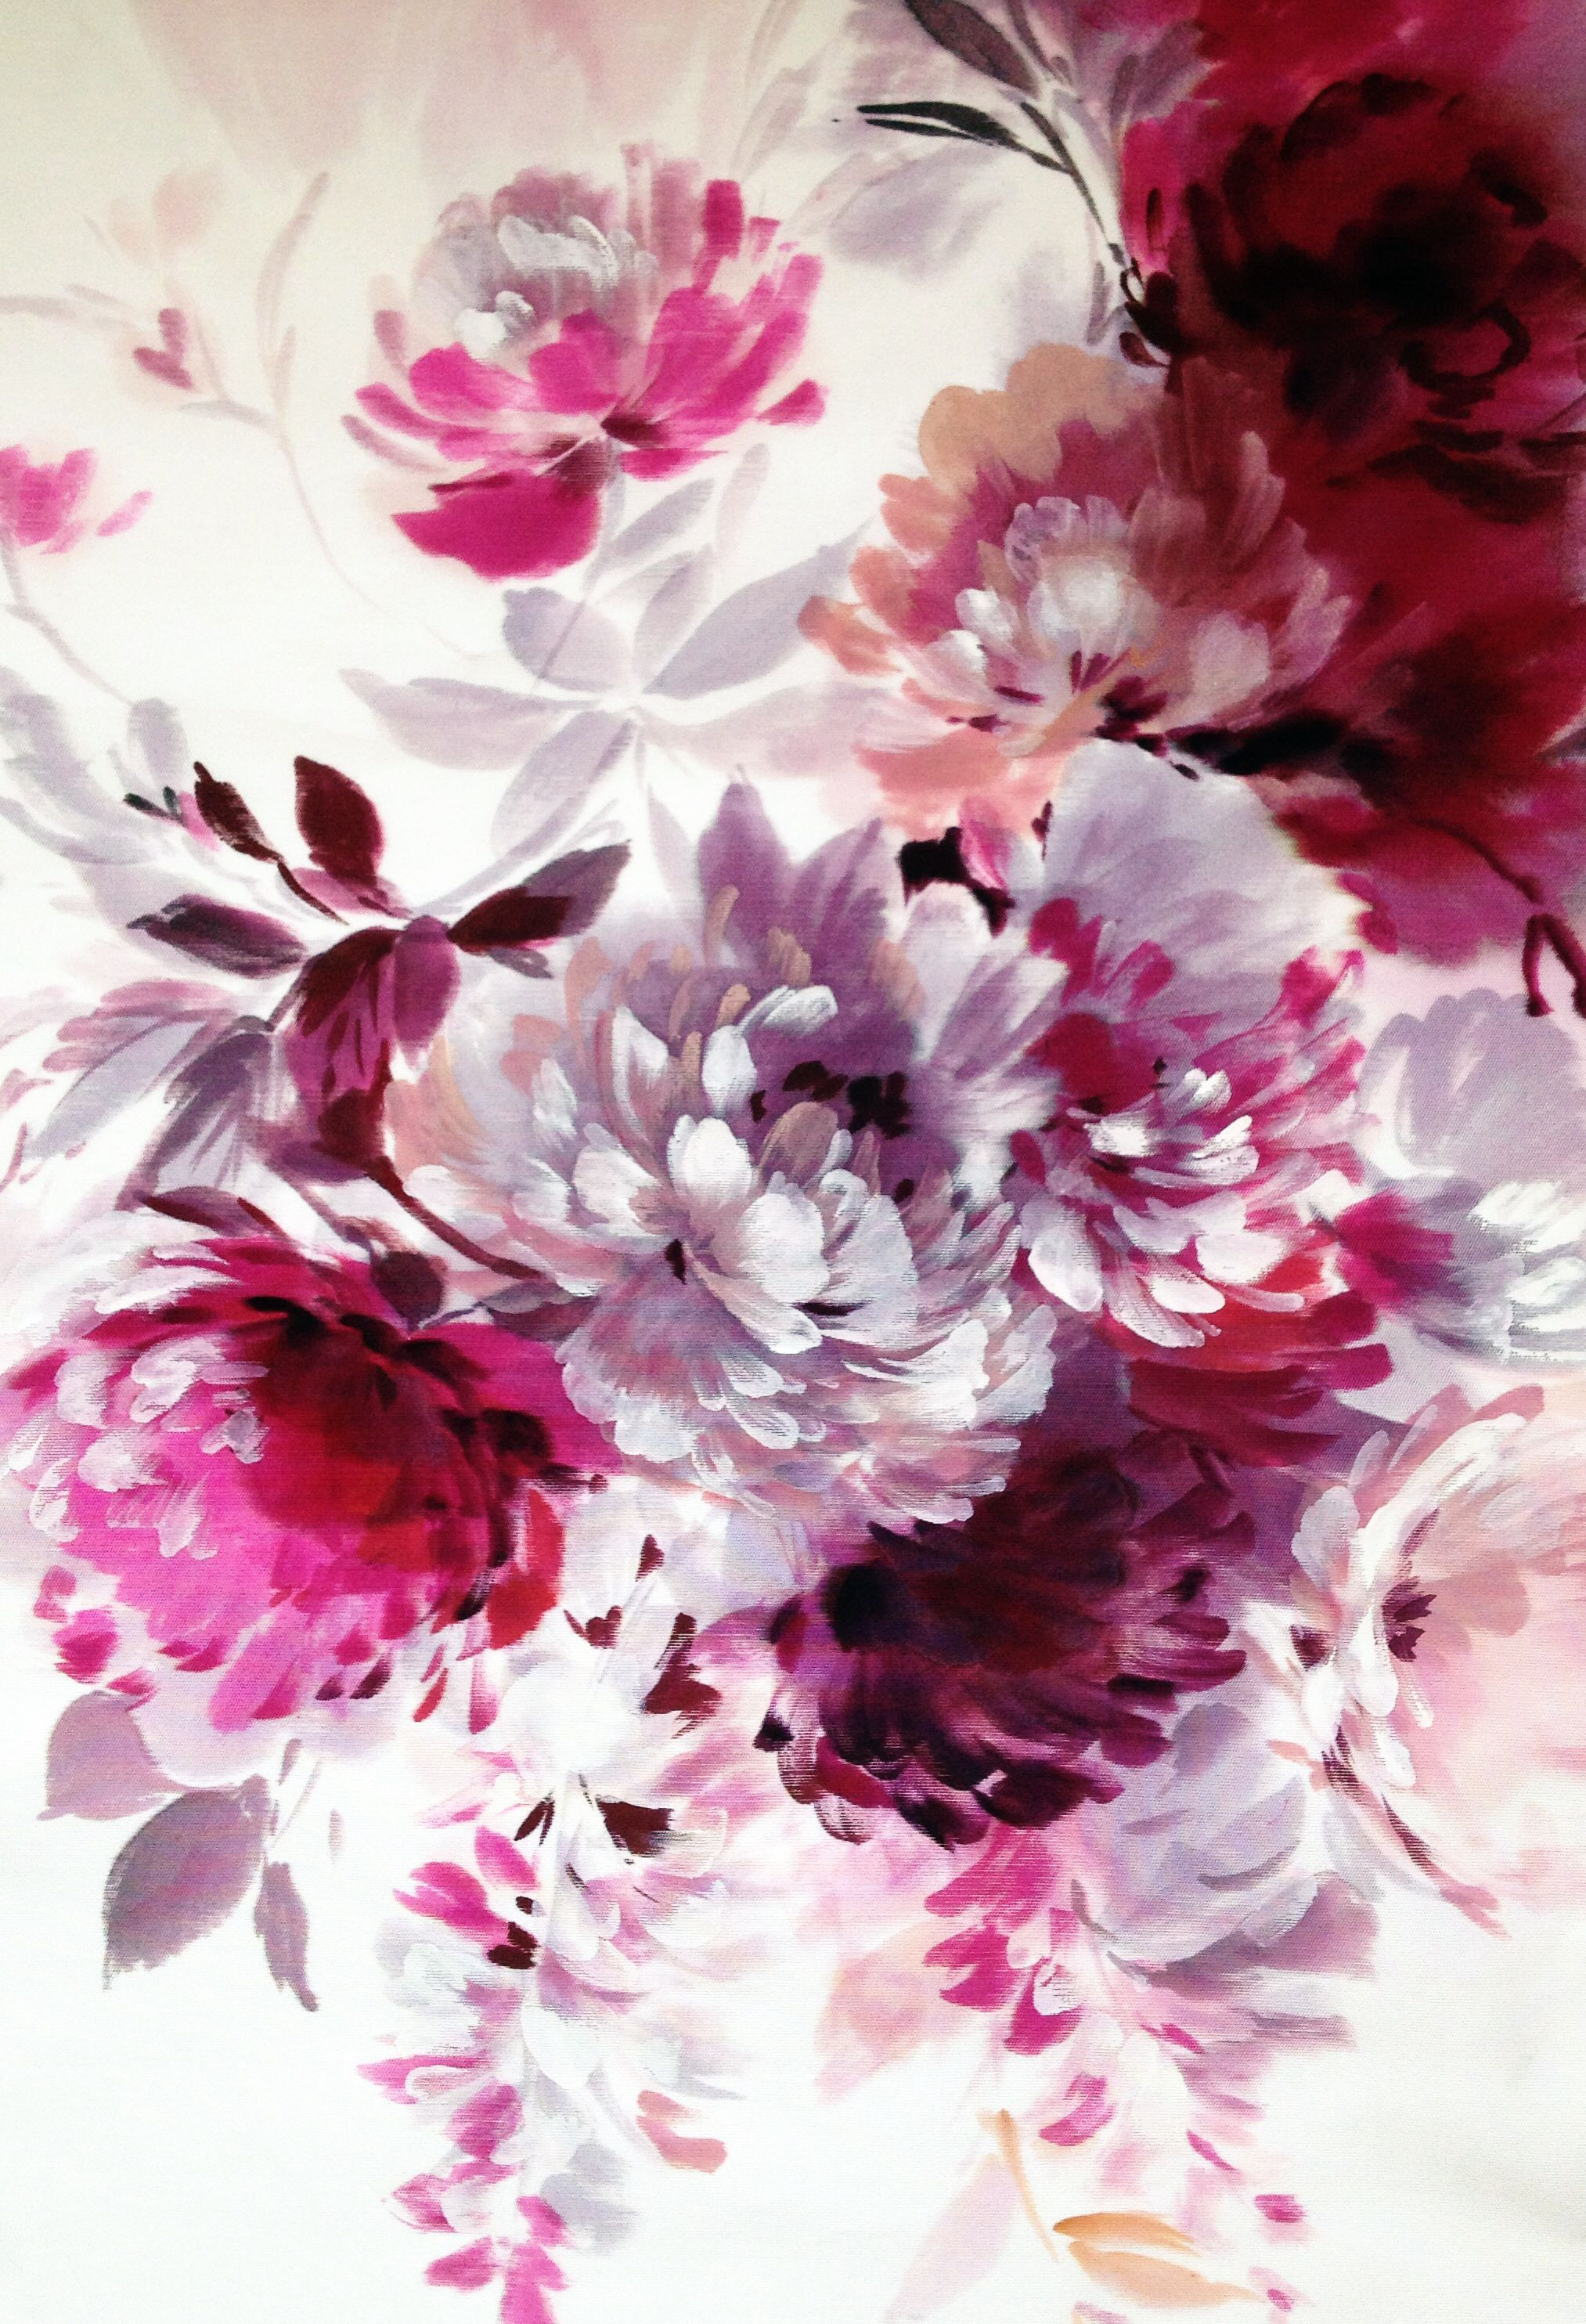 Peony Love Quote Wallpaper Iphone Wallpaper On Pinterest Iphone Wallpapers